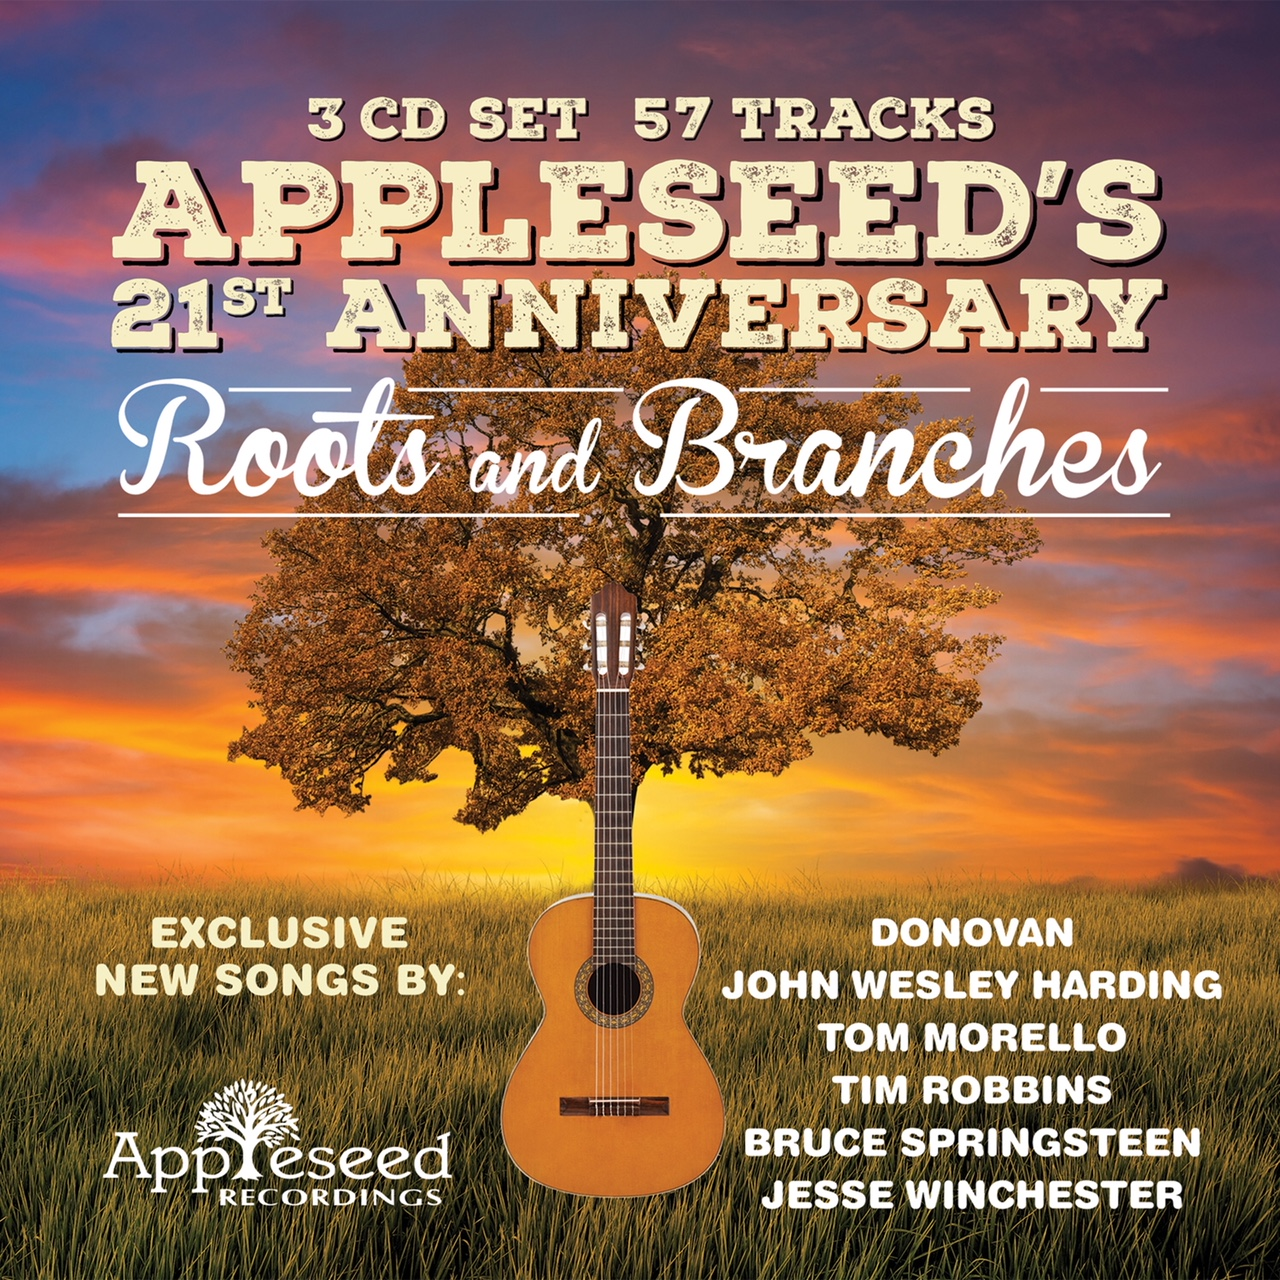 The cover of ´Appleseed's 21st Anniversary: Roots and Branches.´